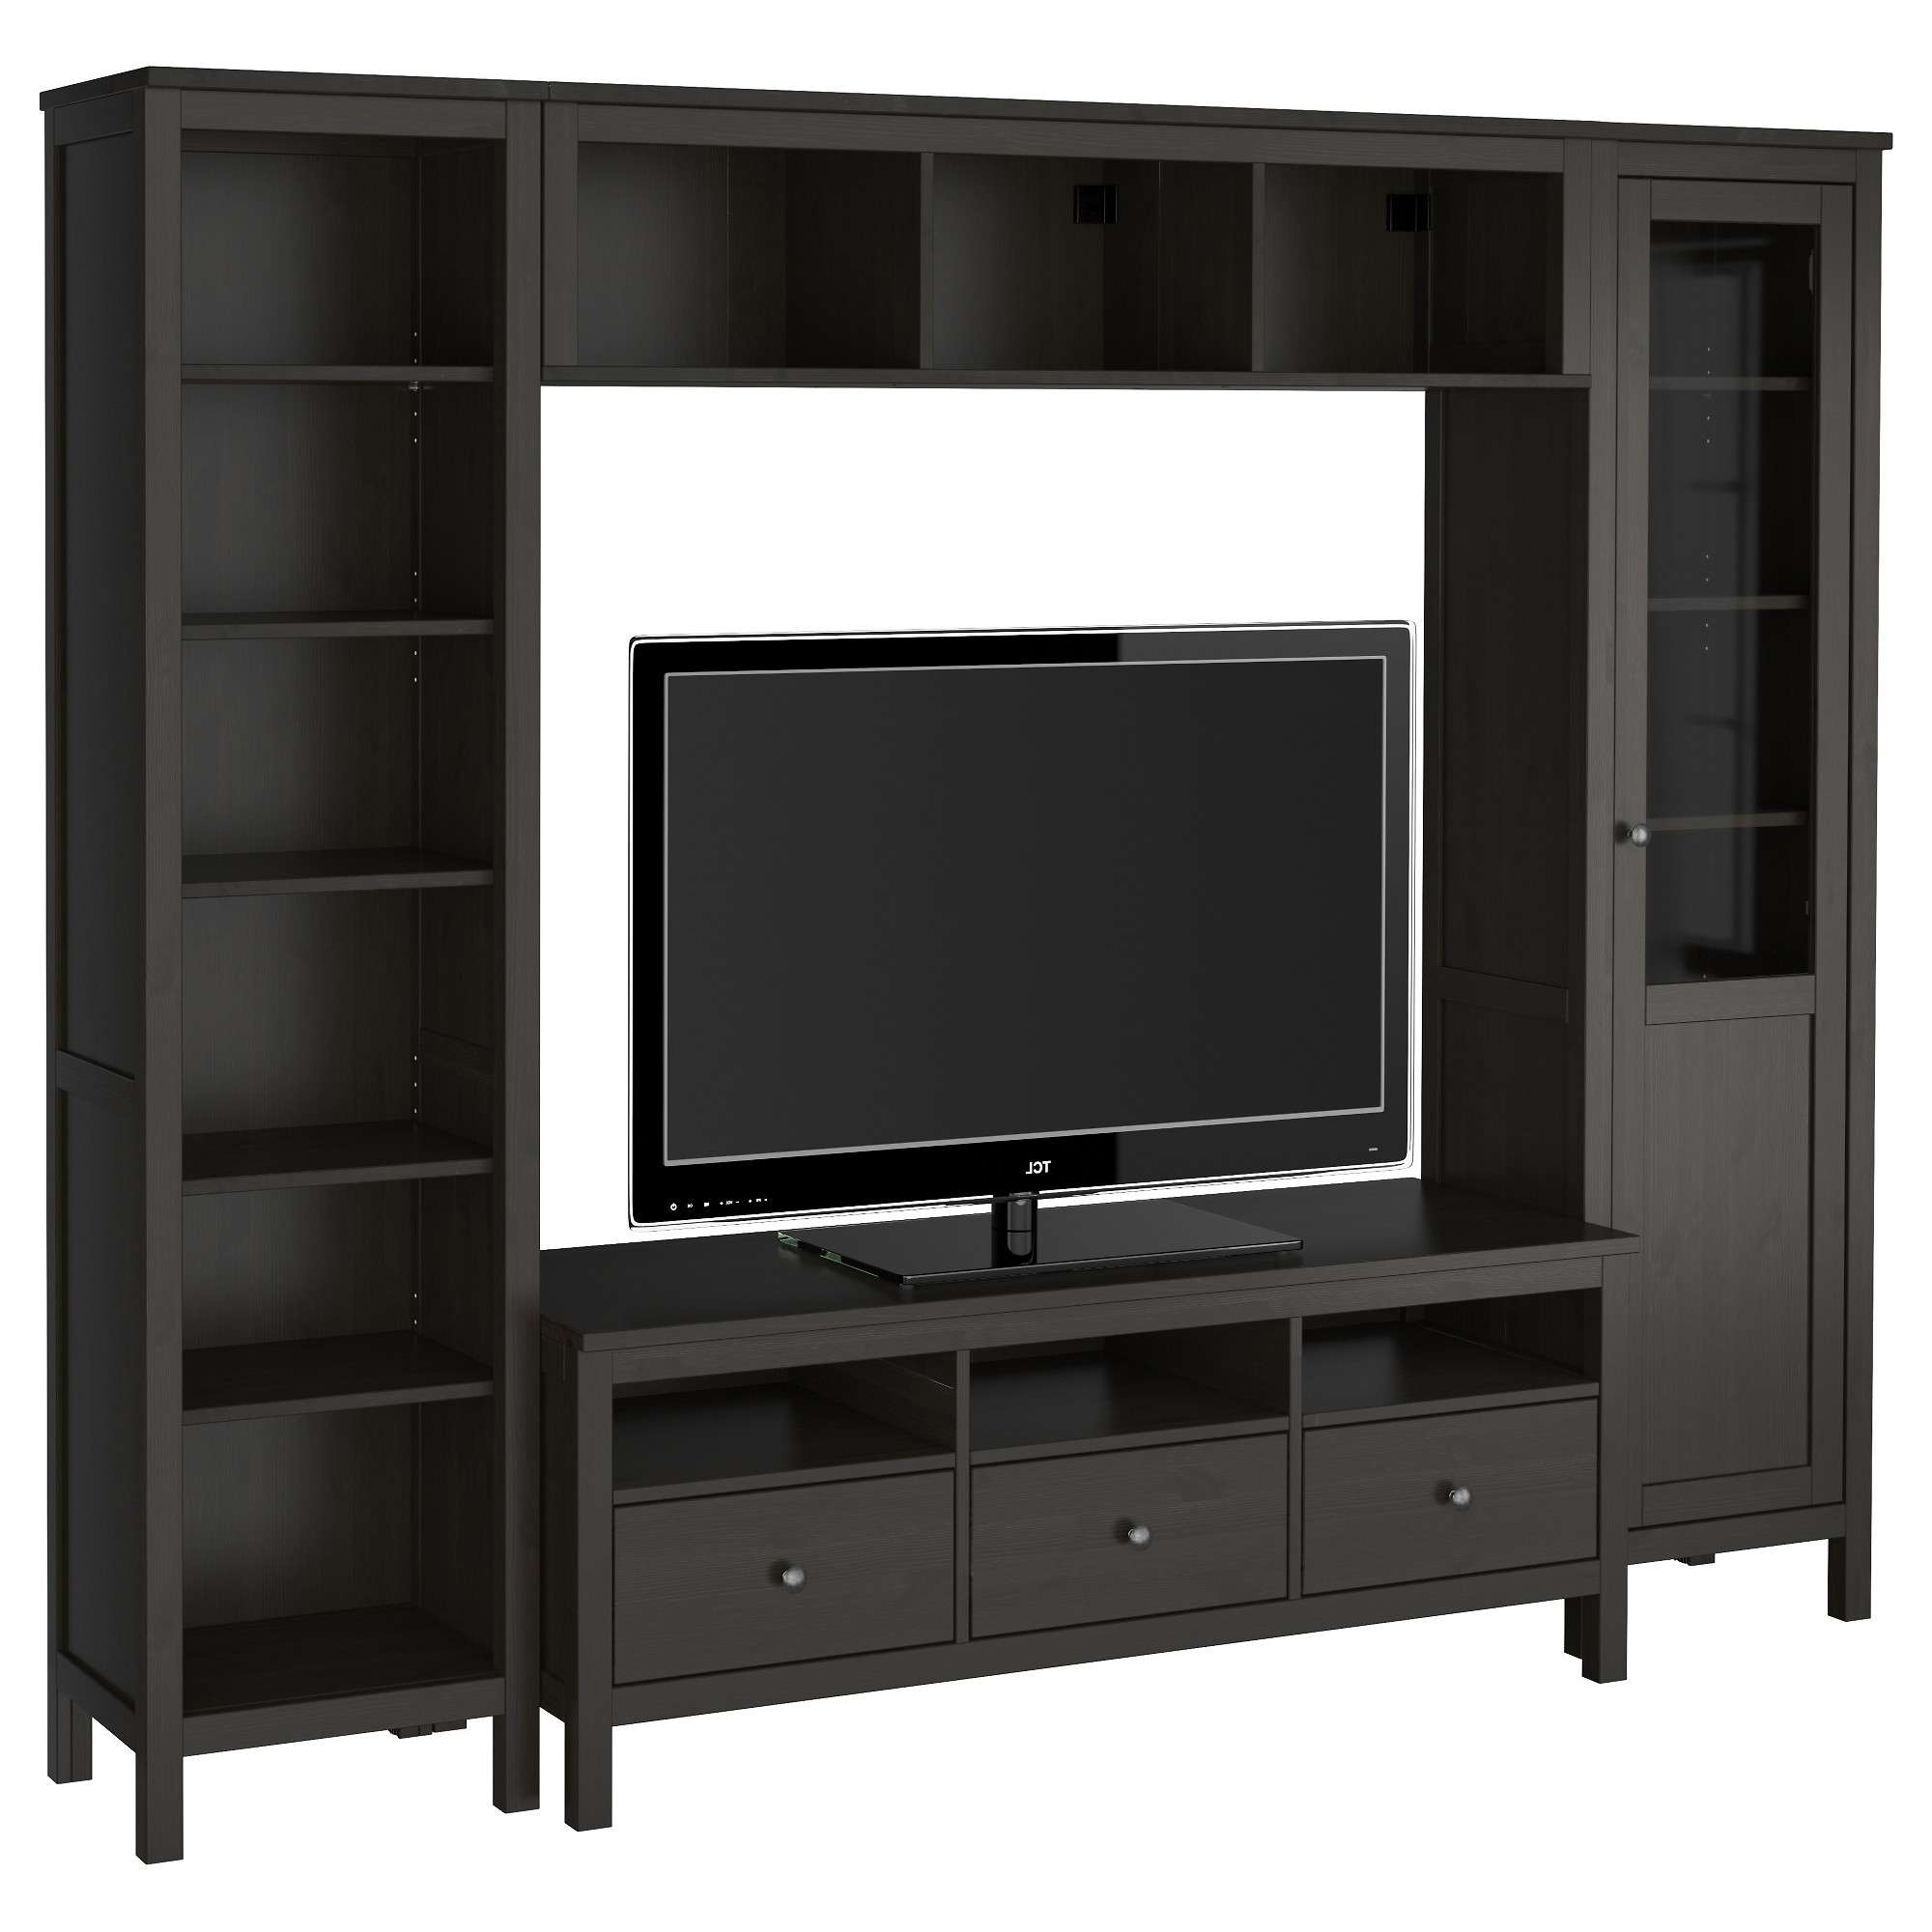 Tv Media Furniture Storage Ikea Hemnes Combination Black Brown With Regard To Tall Black Tv Cabinets (View 20 of 20)